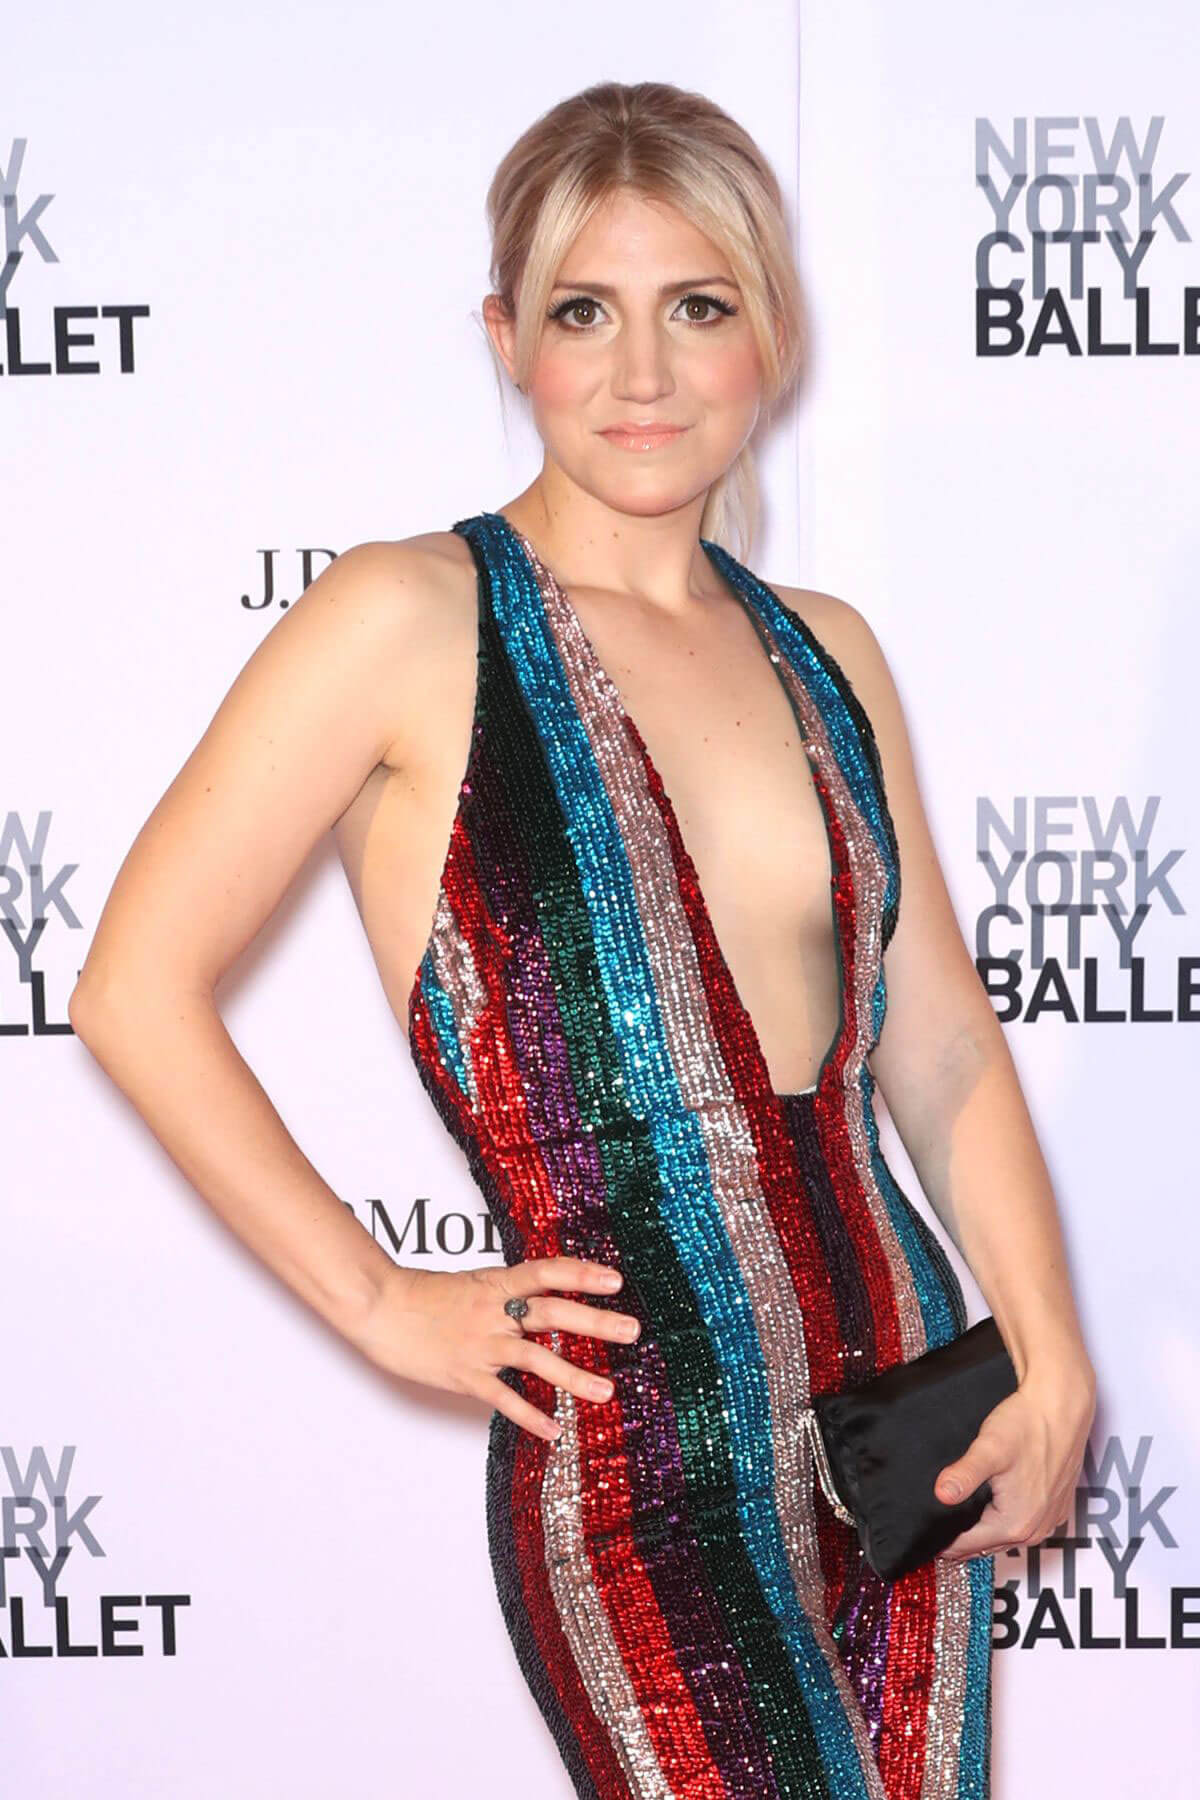 Cleavage Annaleigh Ashford nude photos 2019